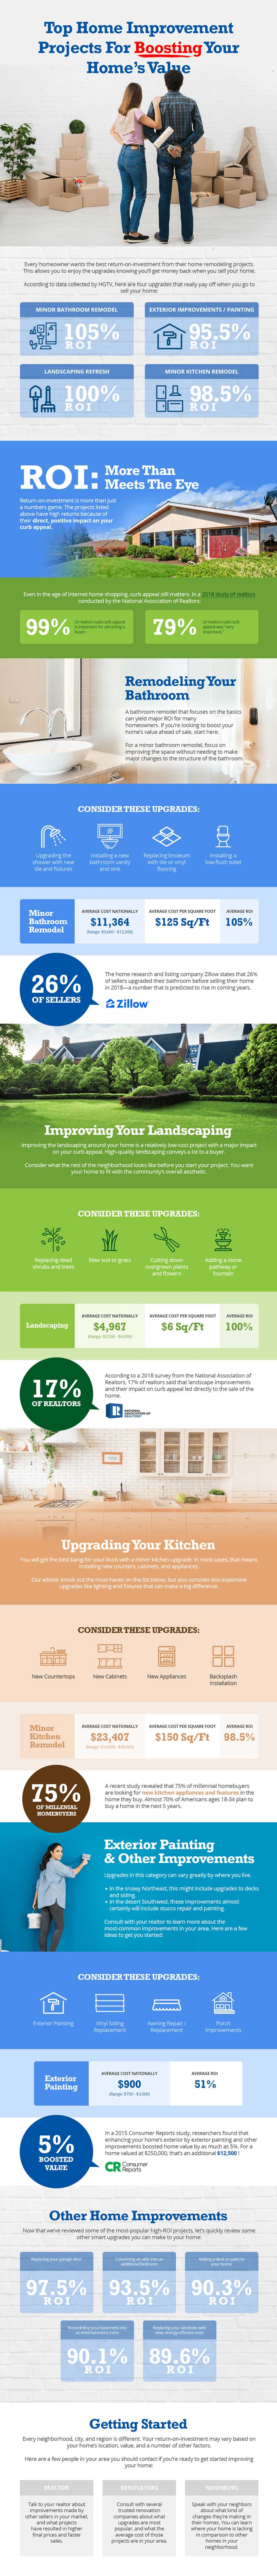 Infographic of top home improvement projects for boosting your homes value.